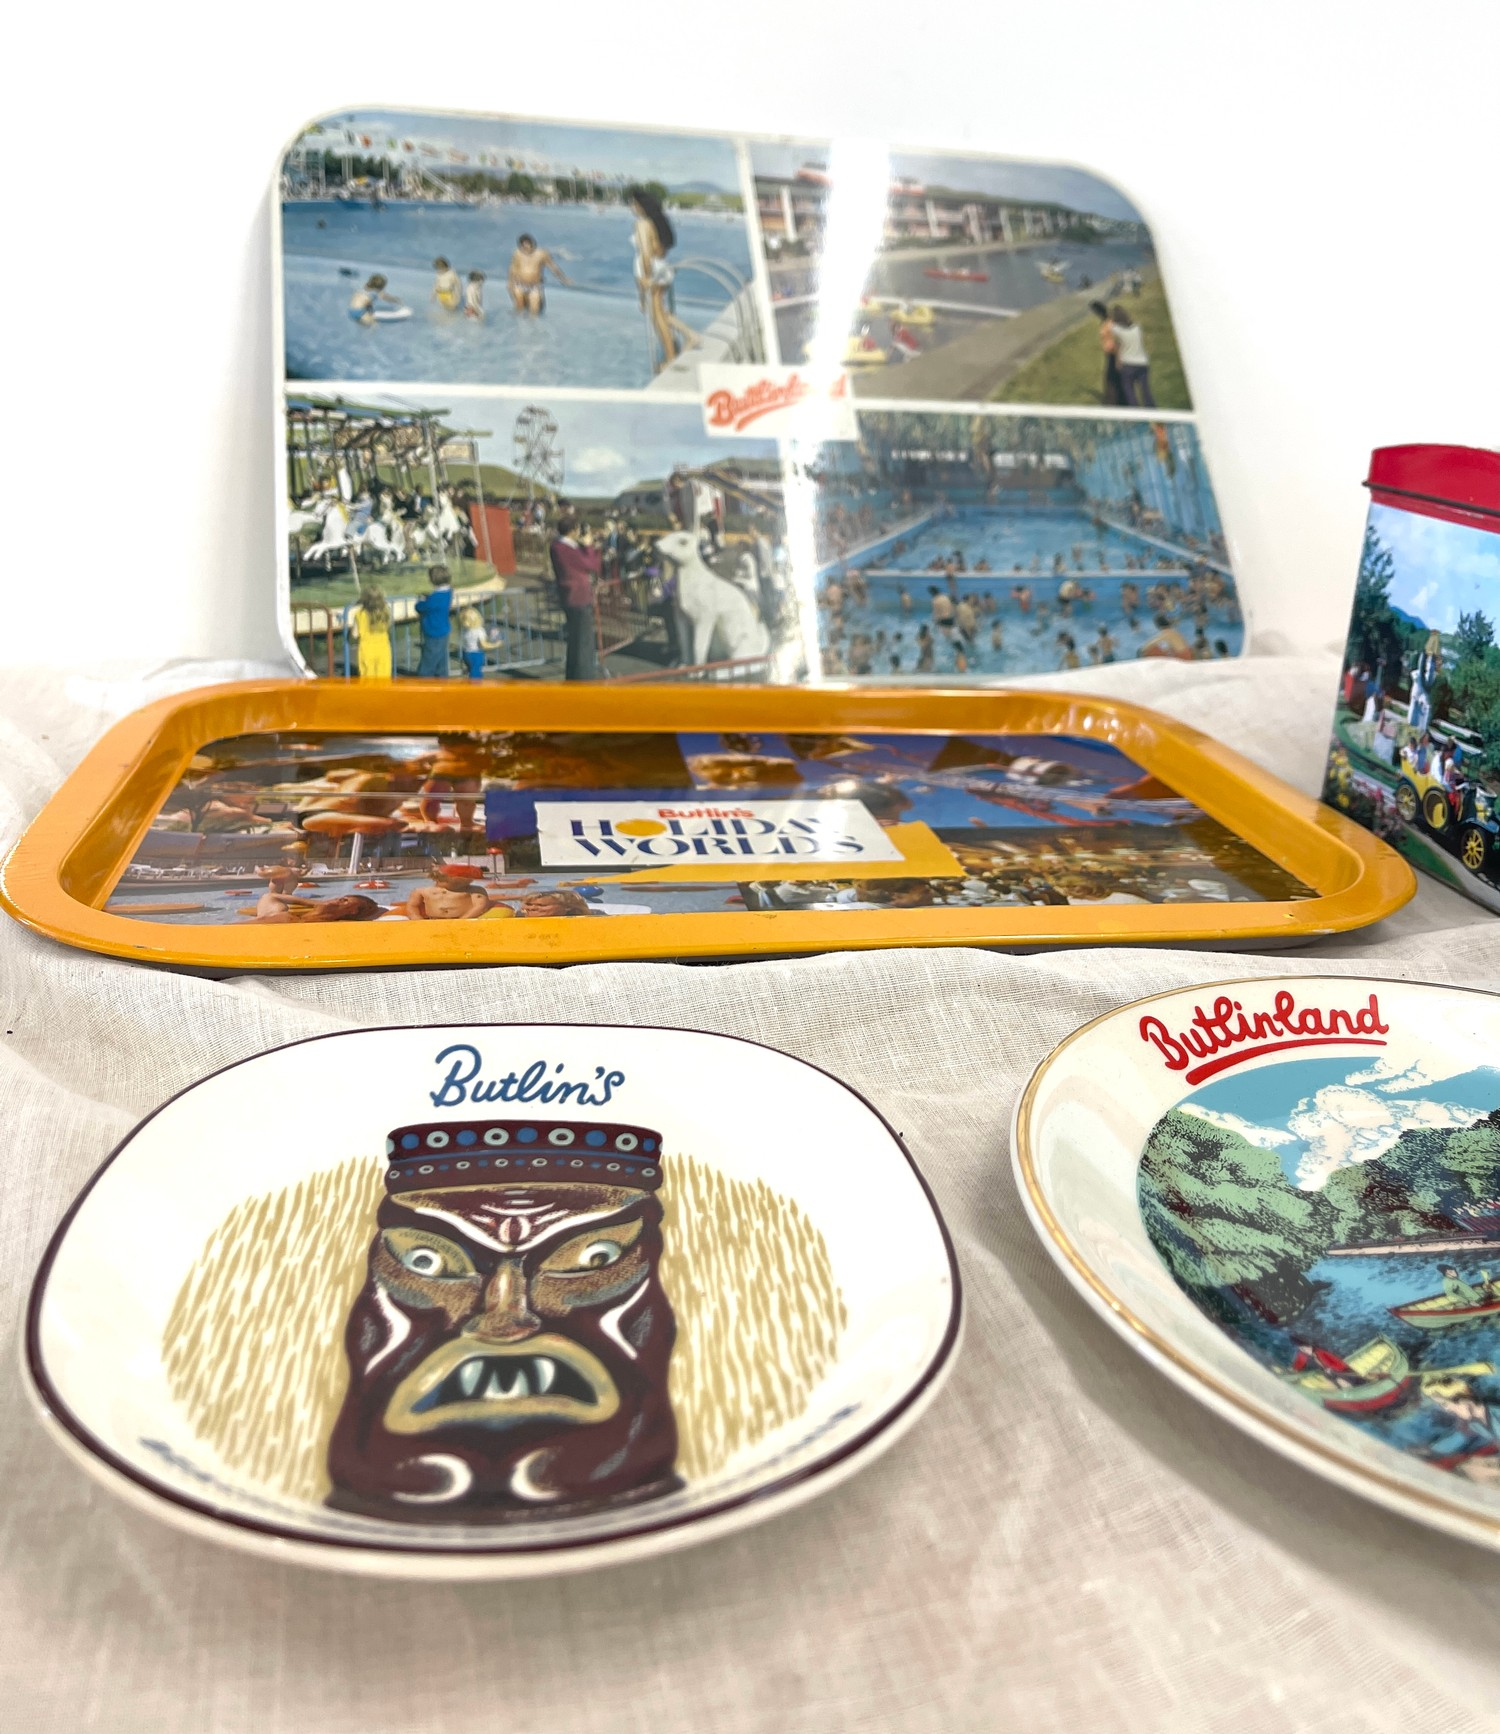 Selection vintage Butlins advertising tins, tray, flask, stanhope - Image 5 of 5